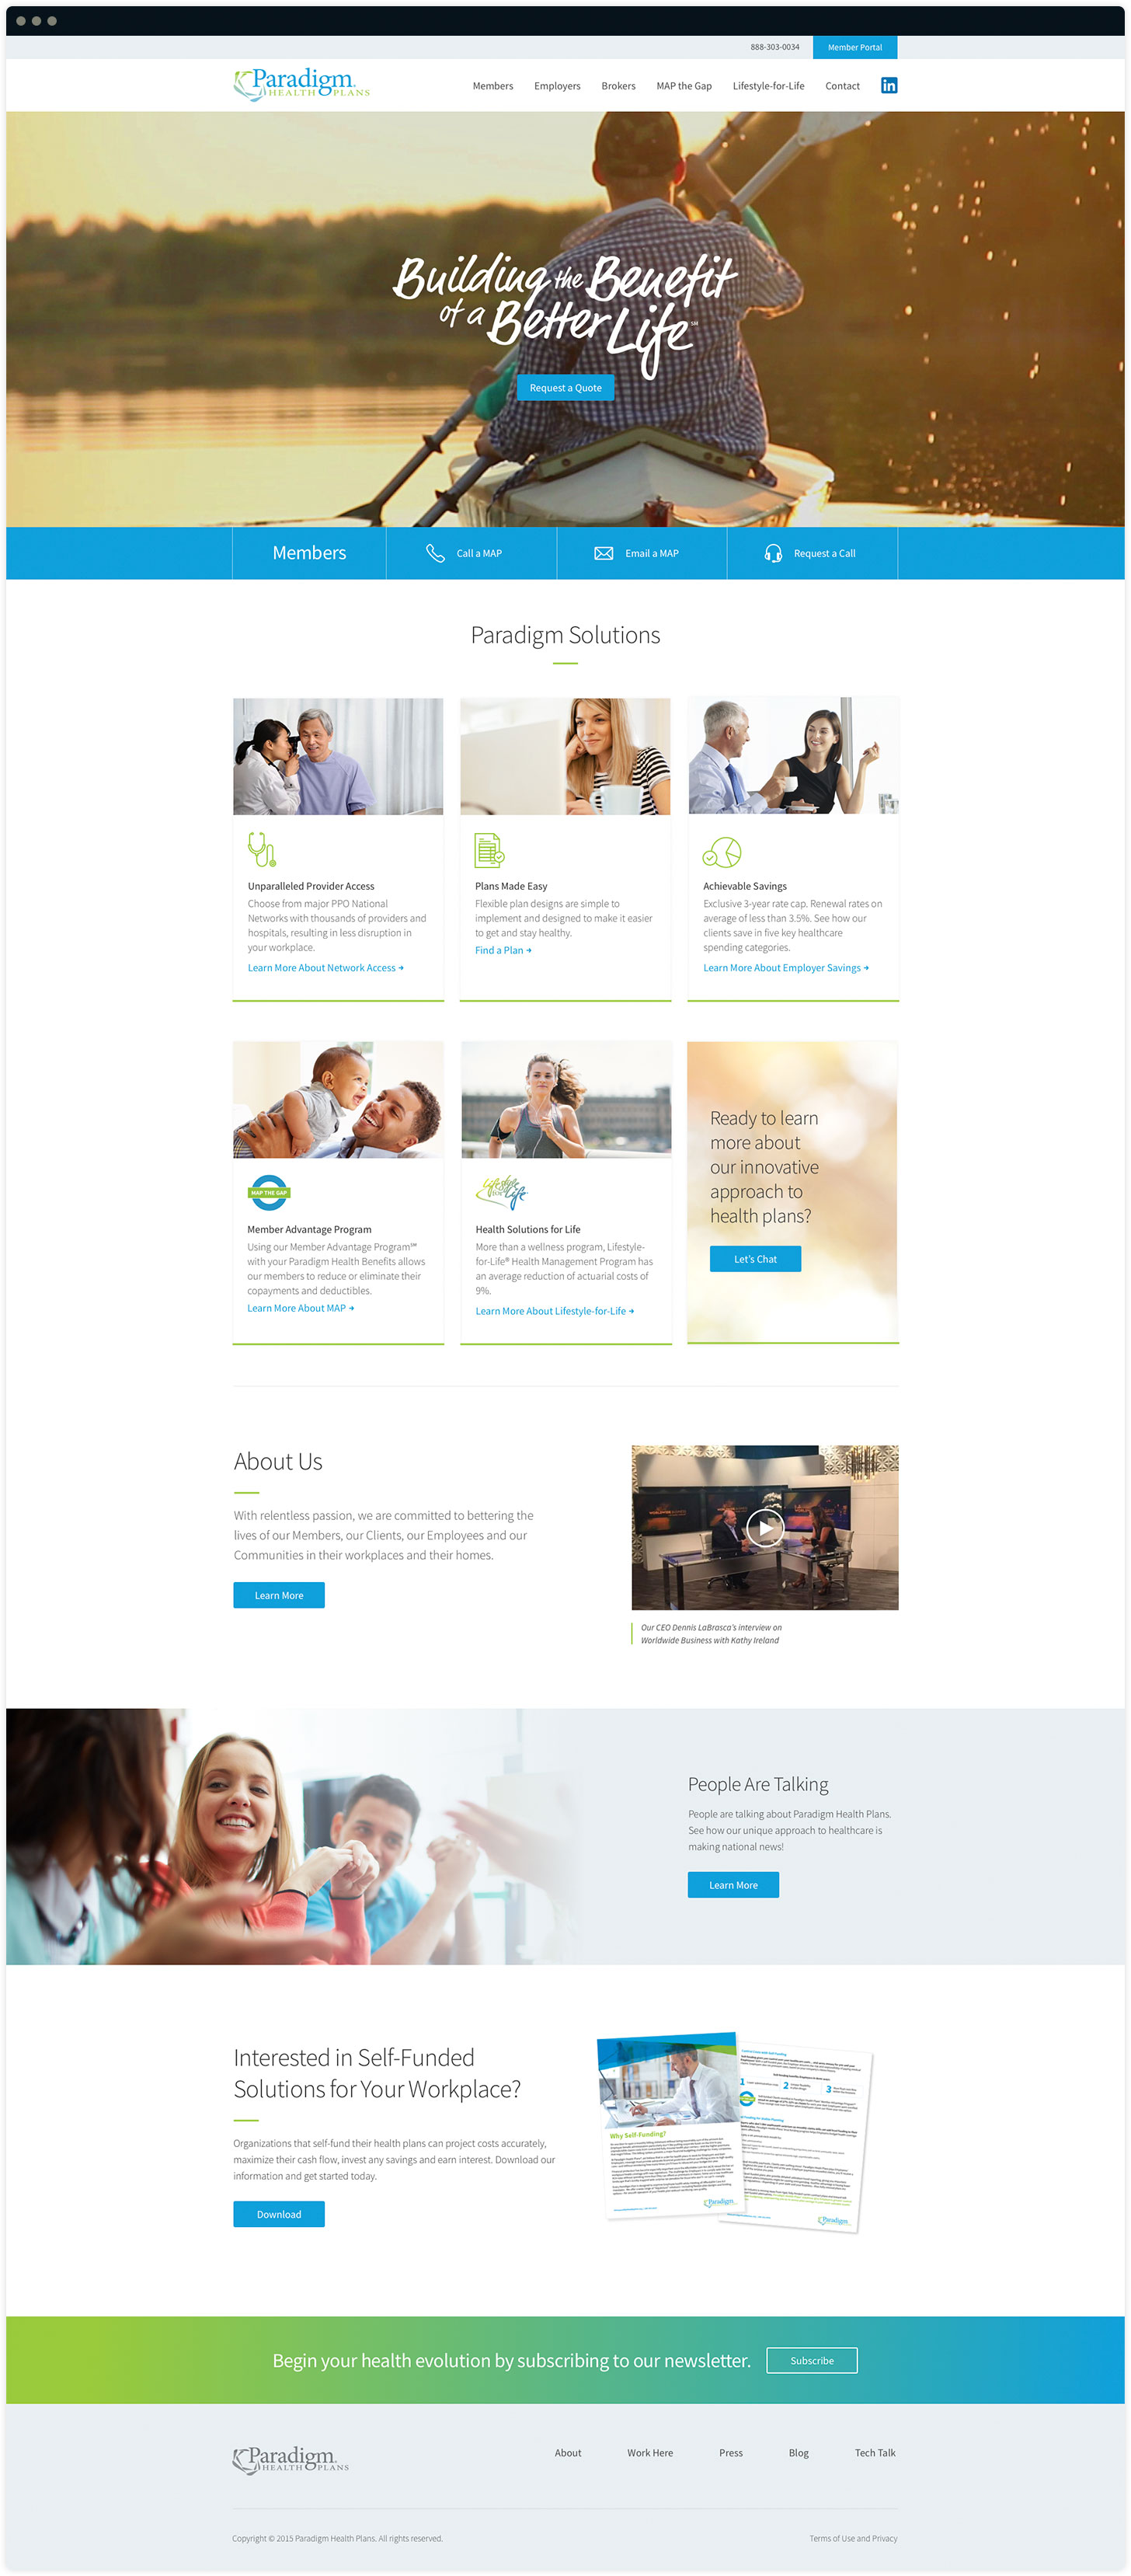 Paradigm Homepage Design by Salted Stone